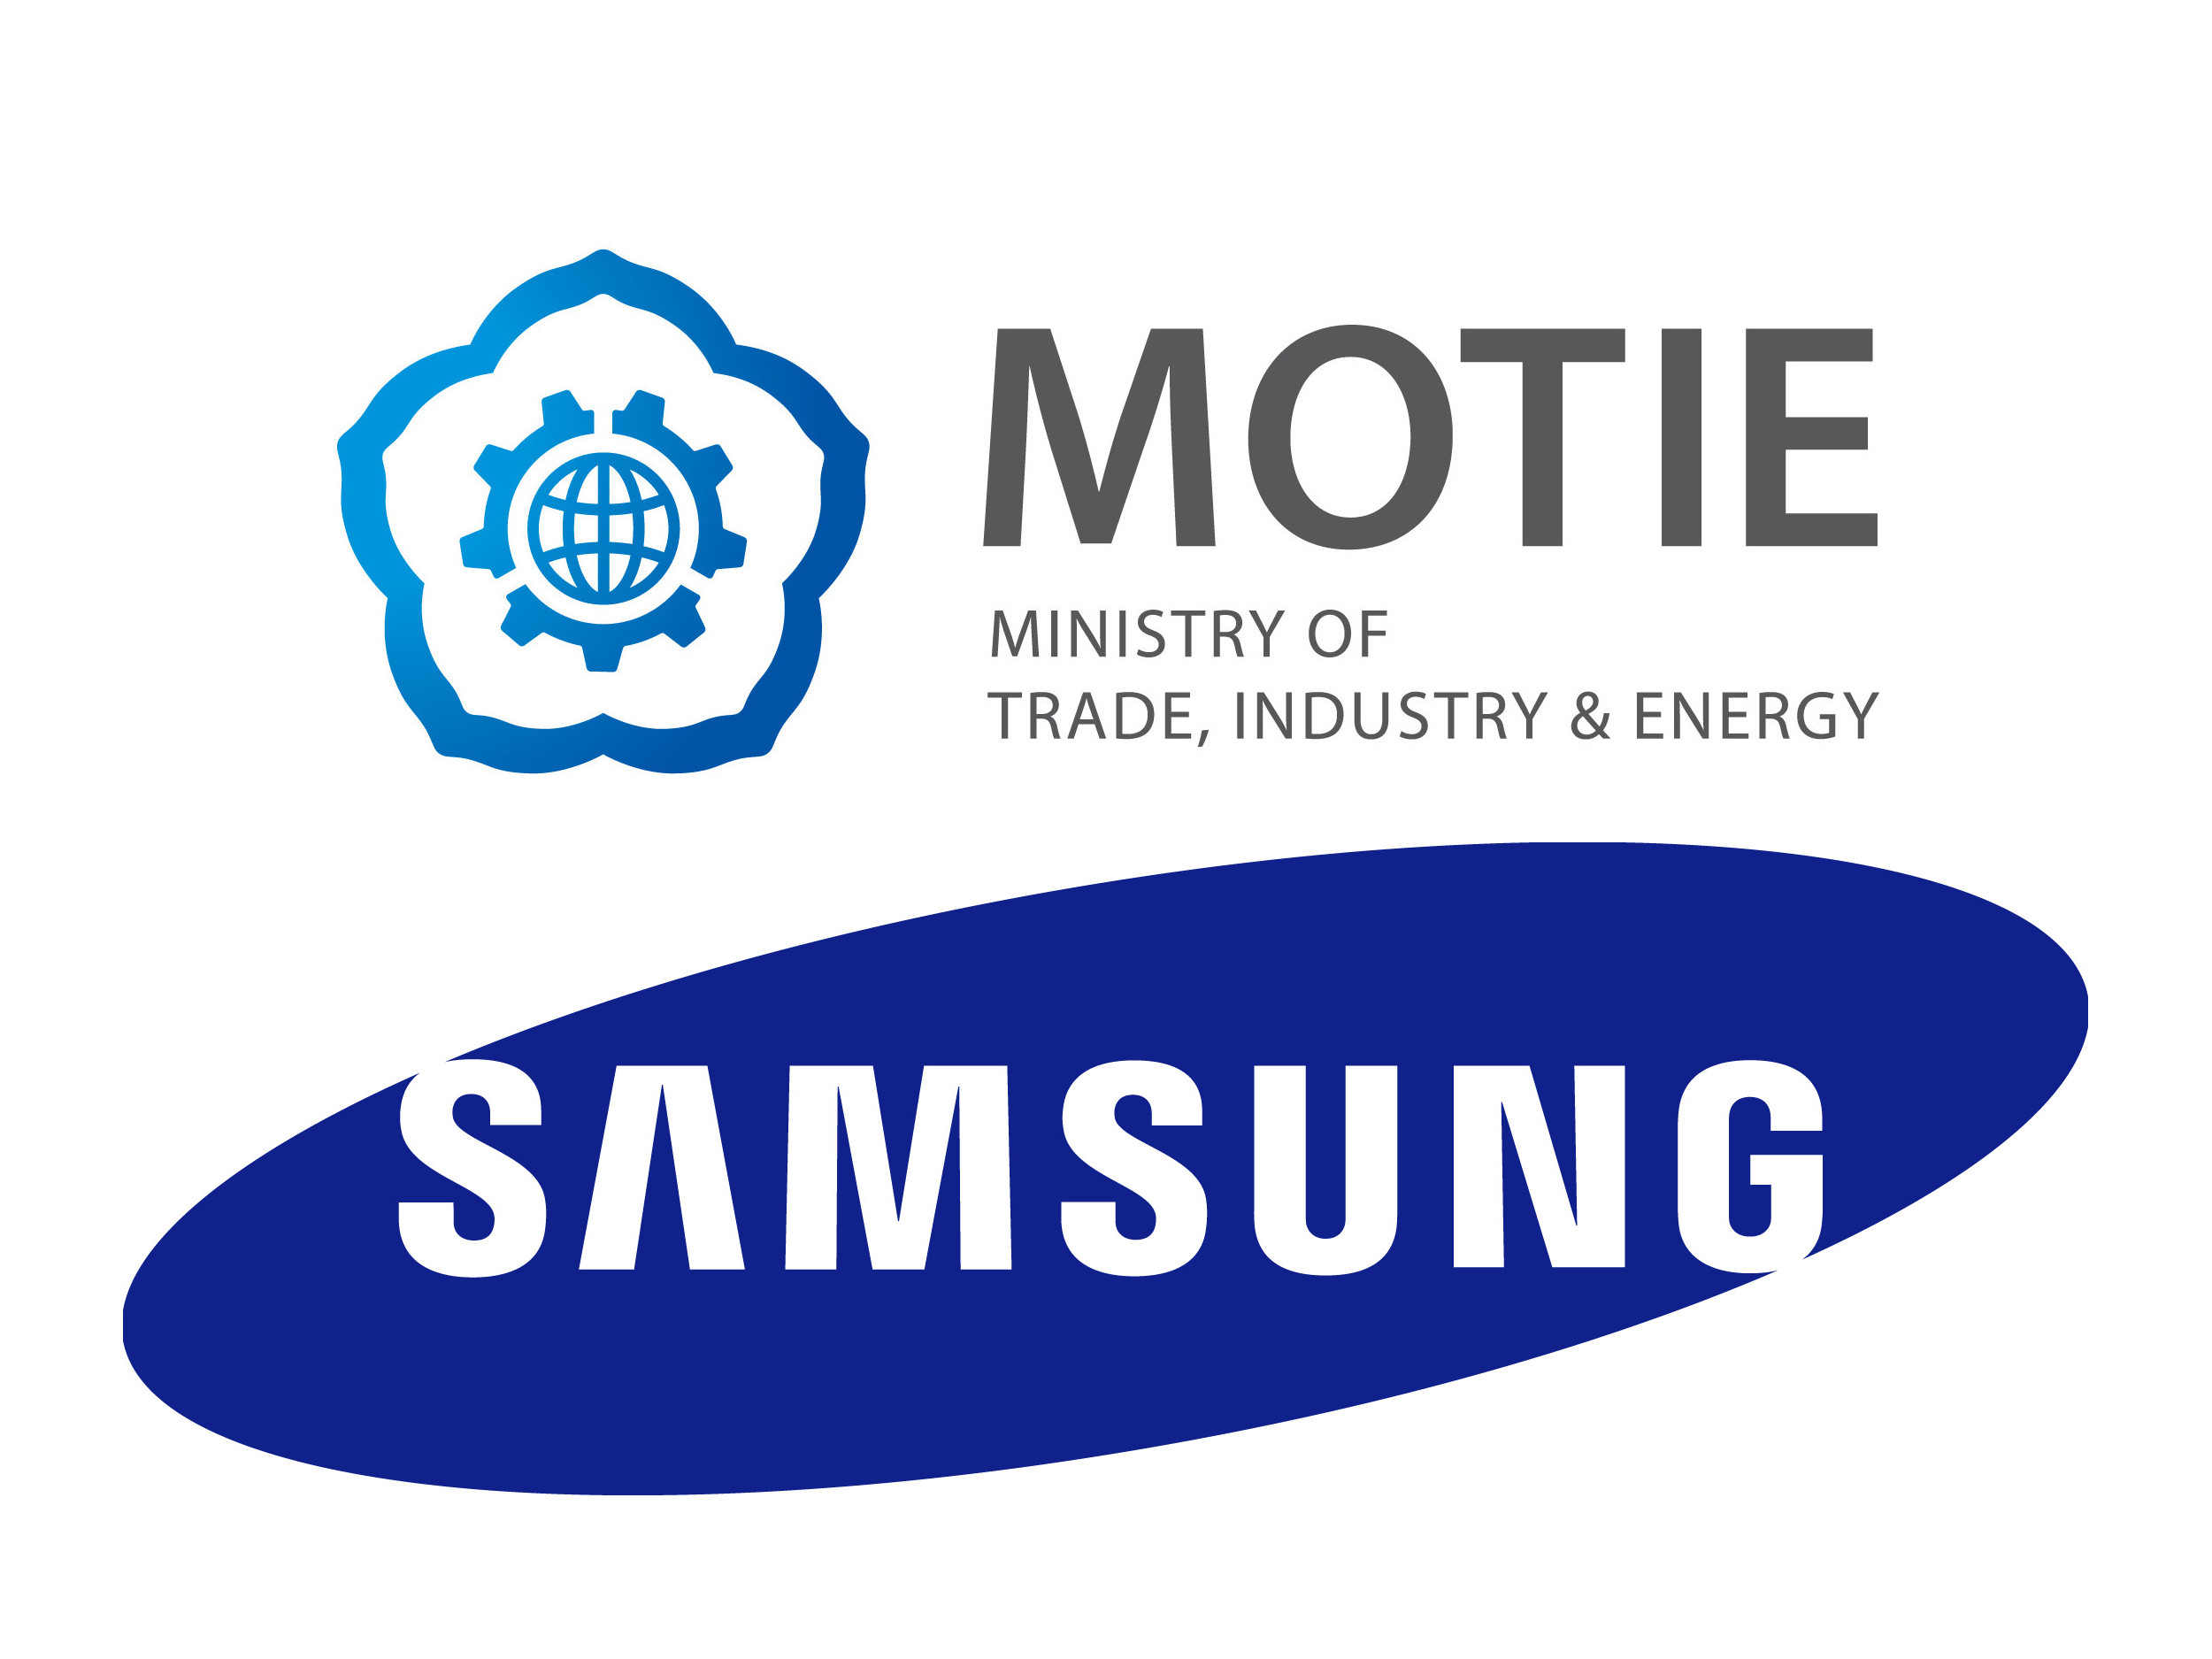 The Ministry of Trade, Industry and Energy (MOTIE).